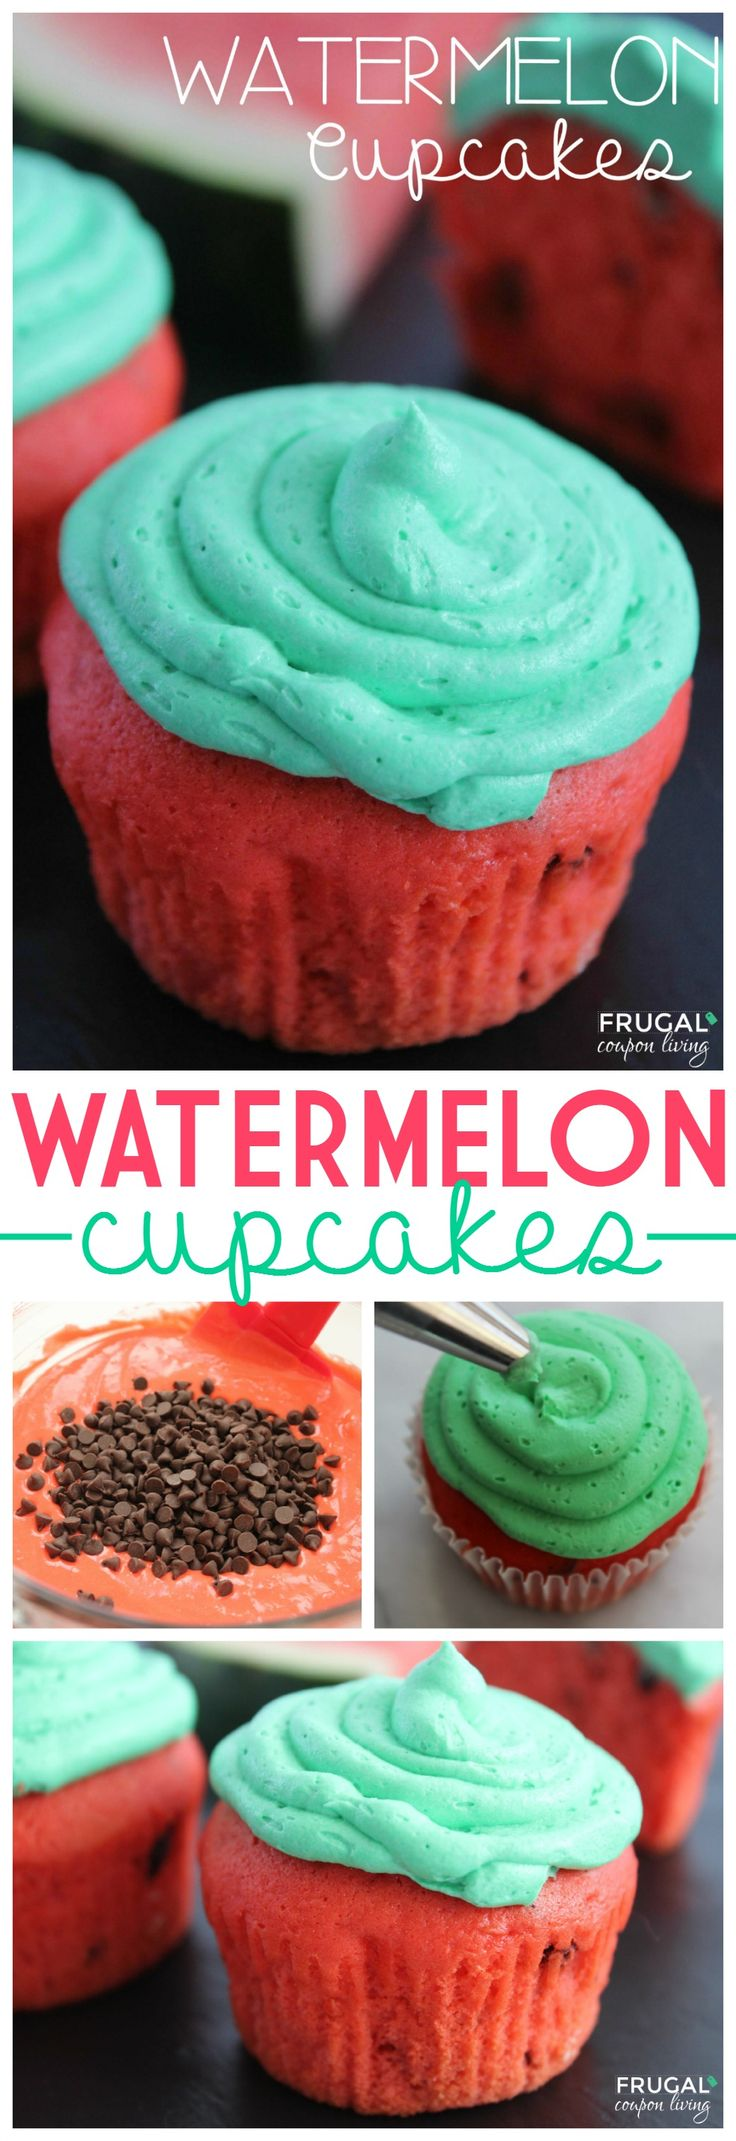 Watermelon Cupcakes with Chocolate Chips - this watermelon recipe is great for kids as a summer treat. Recipe and Tutorial on Frugal Coupon Living.